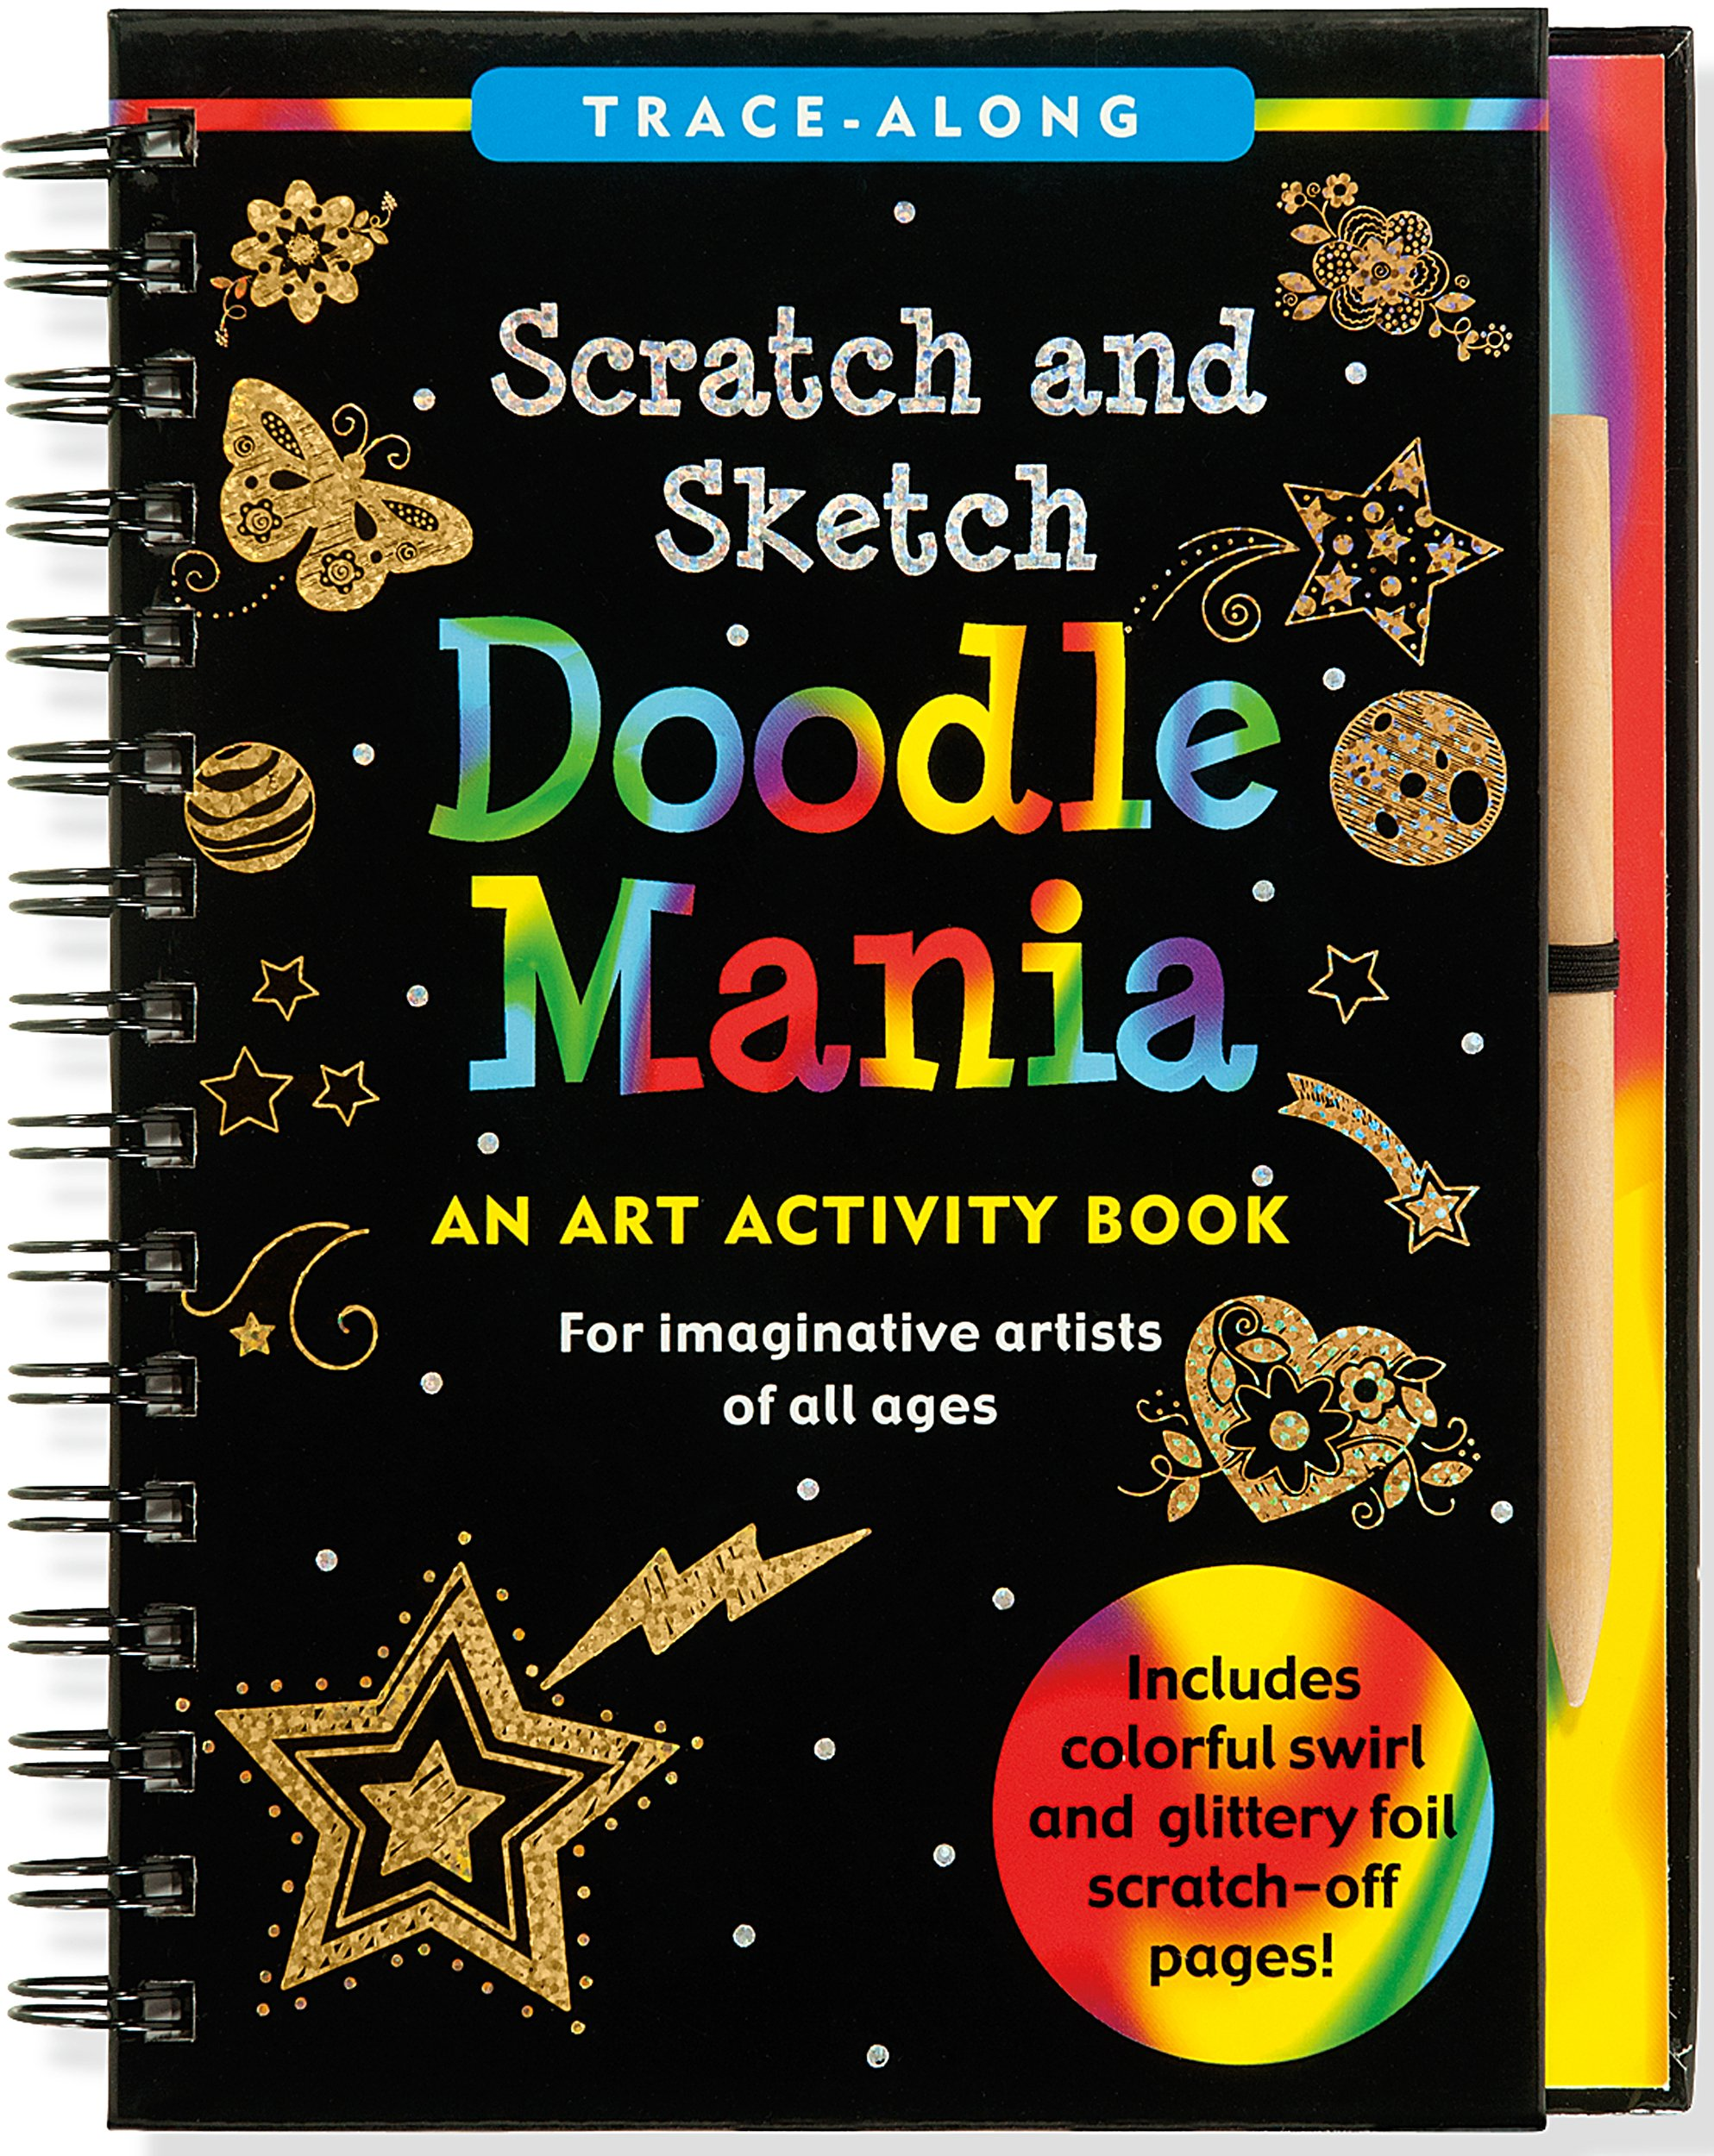 Doodle Mania Scratch & Sketch (Art, Activity Kit) (Trace-Along Scratch and Sketch)